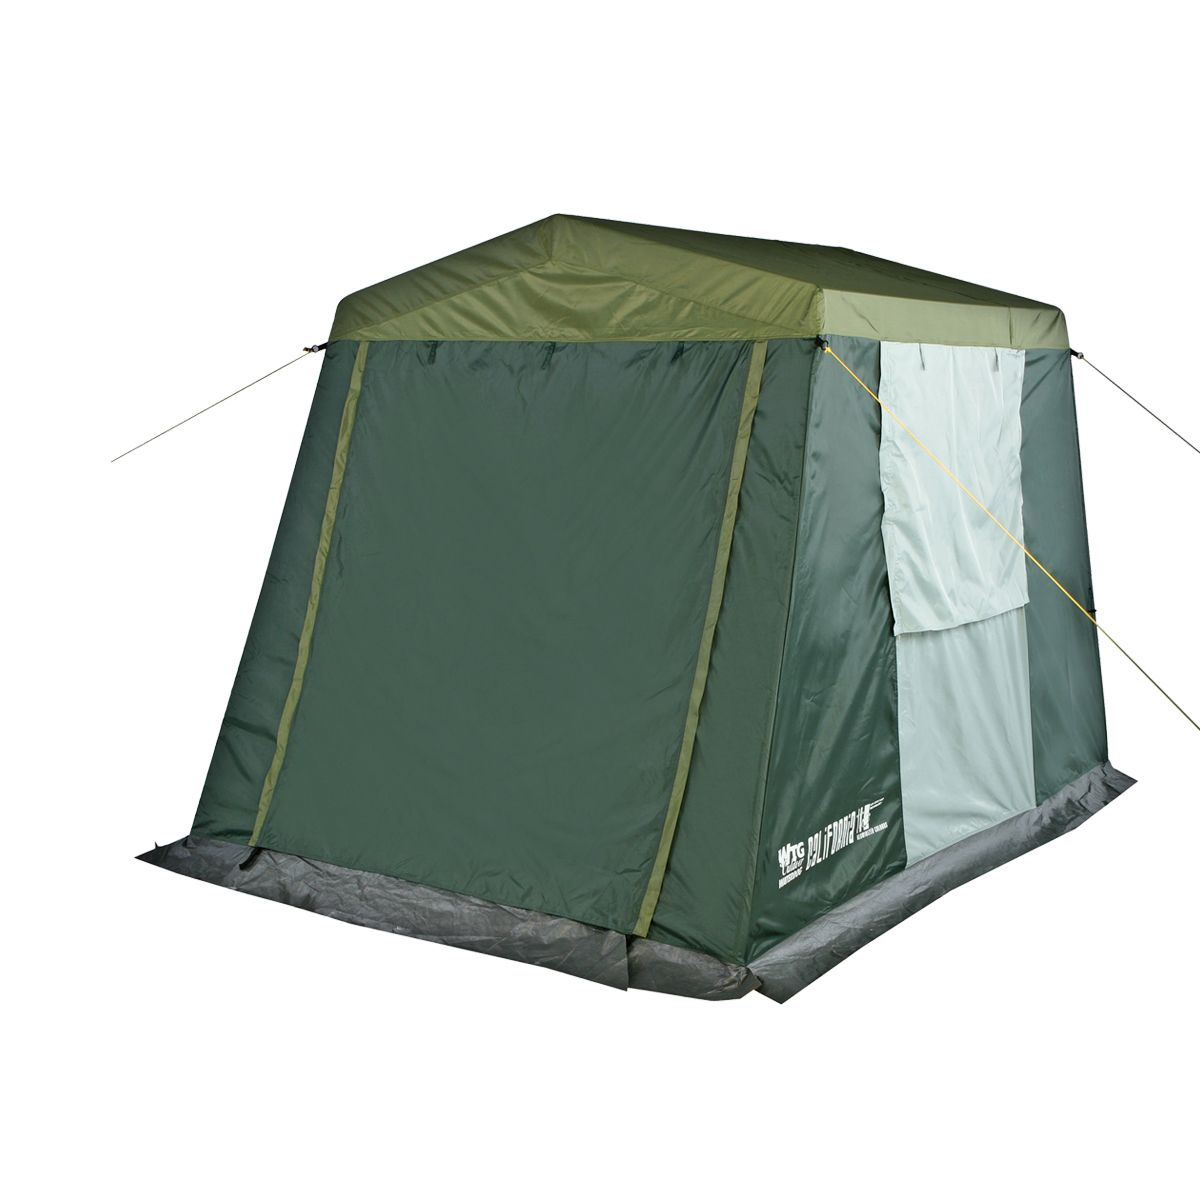 pezcalandia carpa comedor waterdog royal